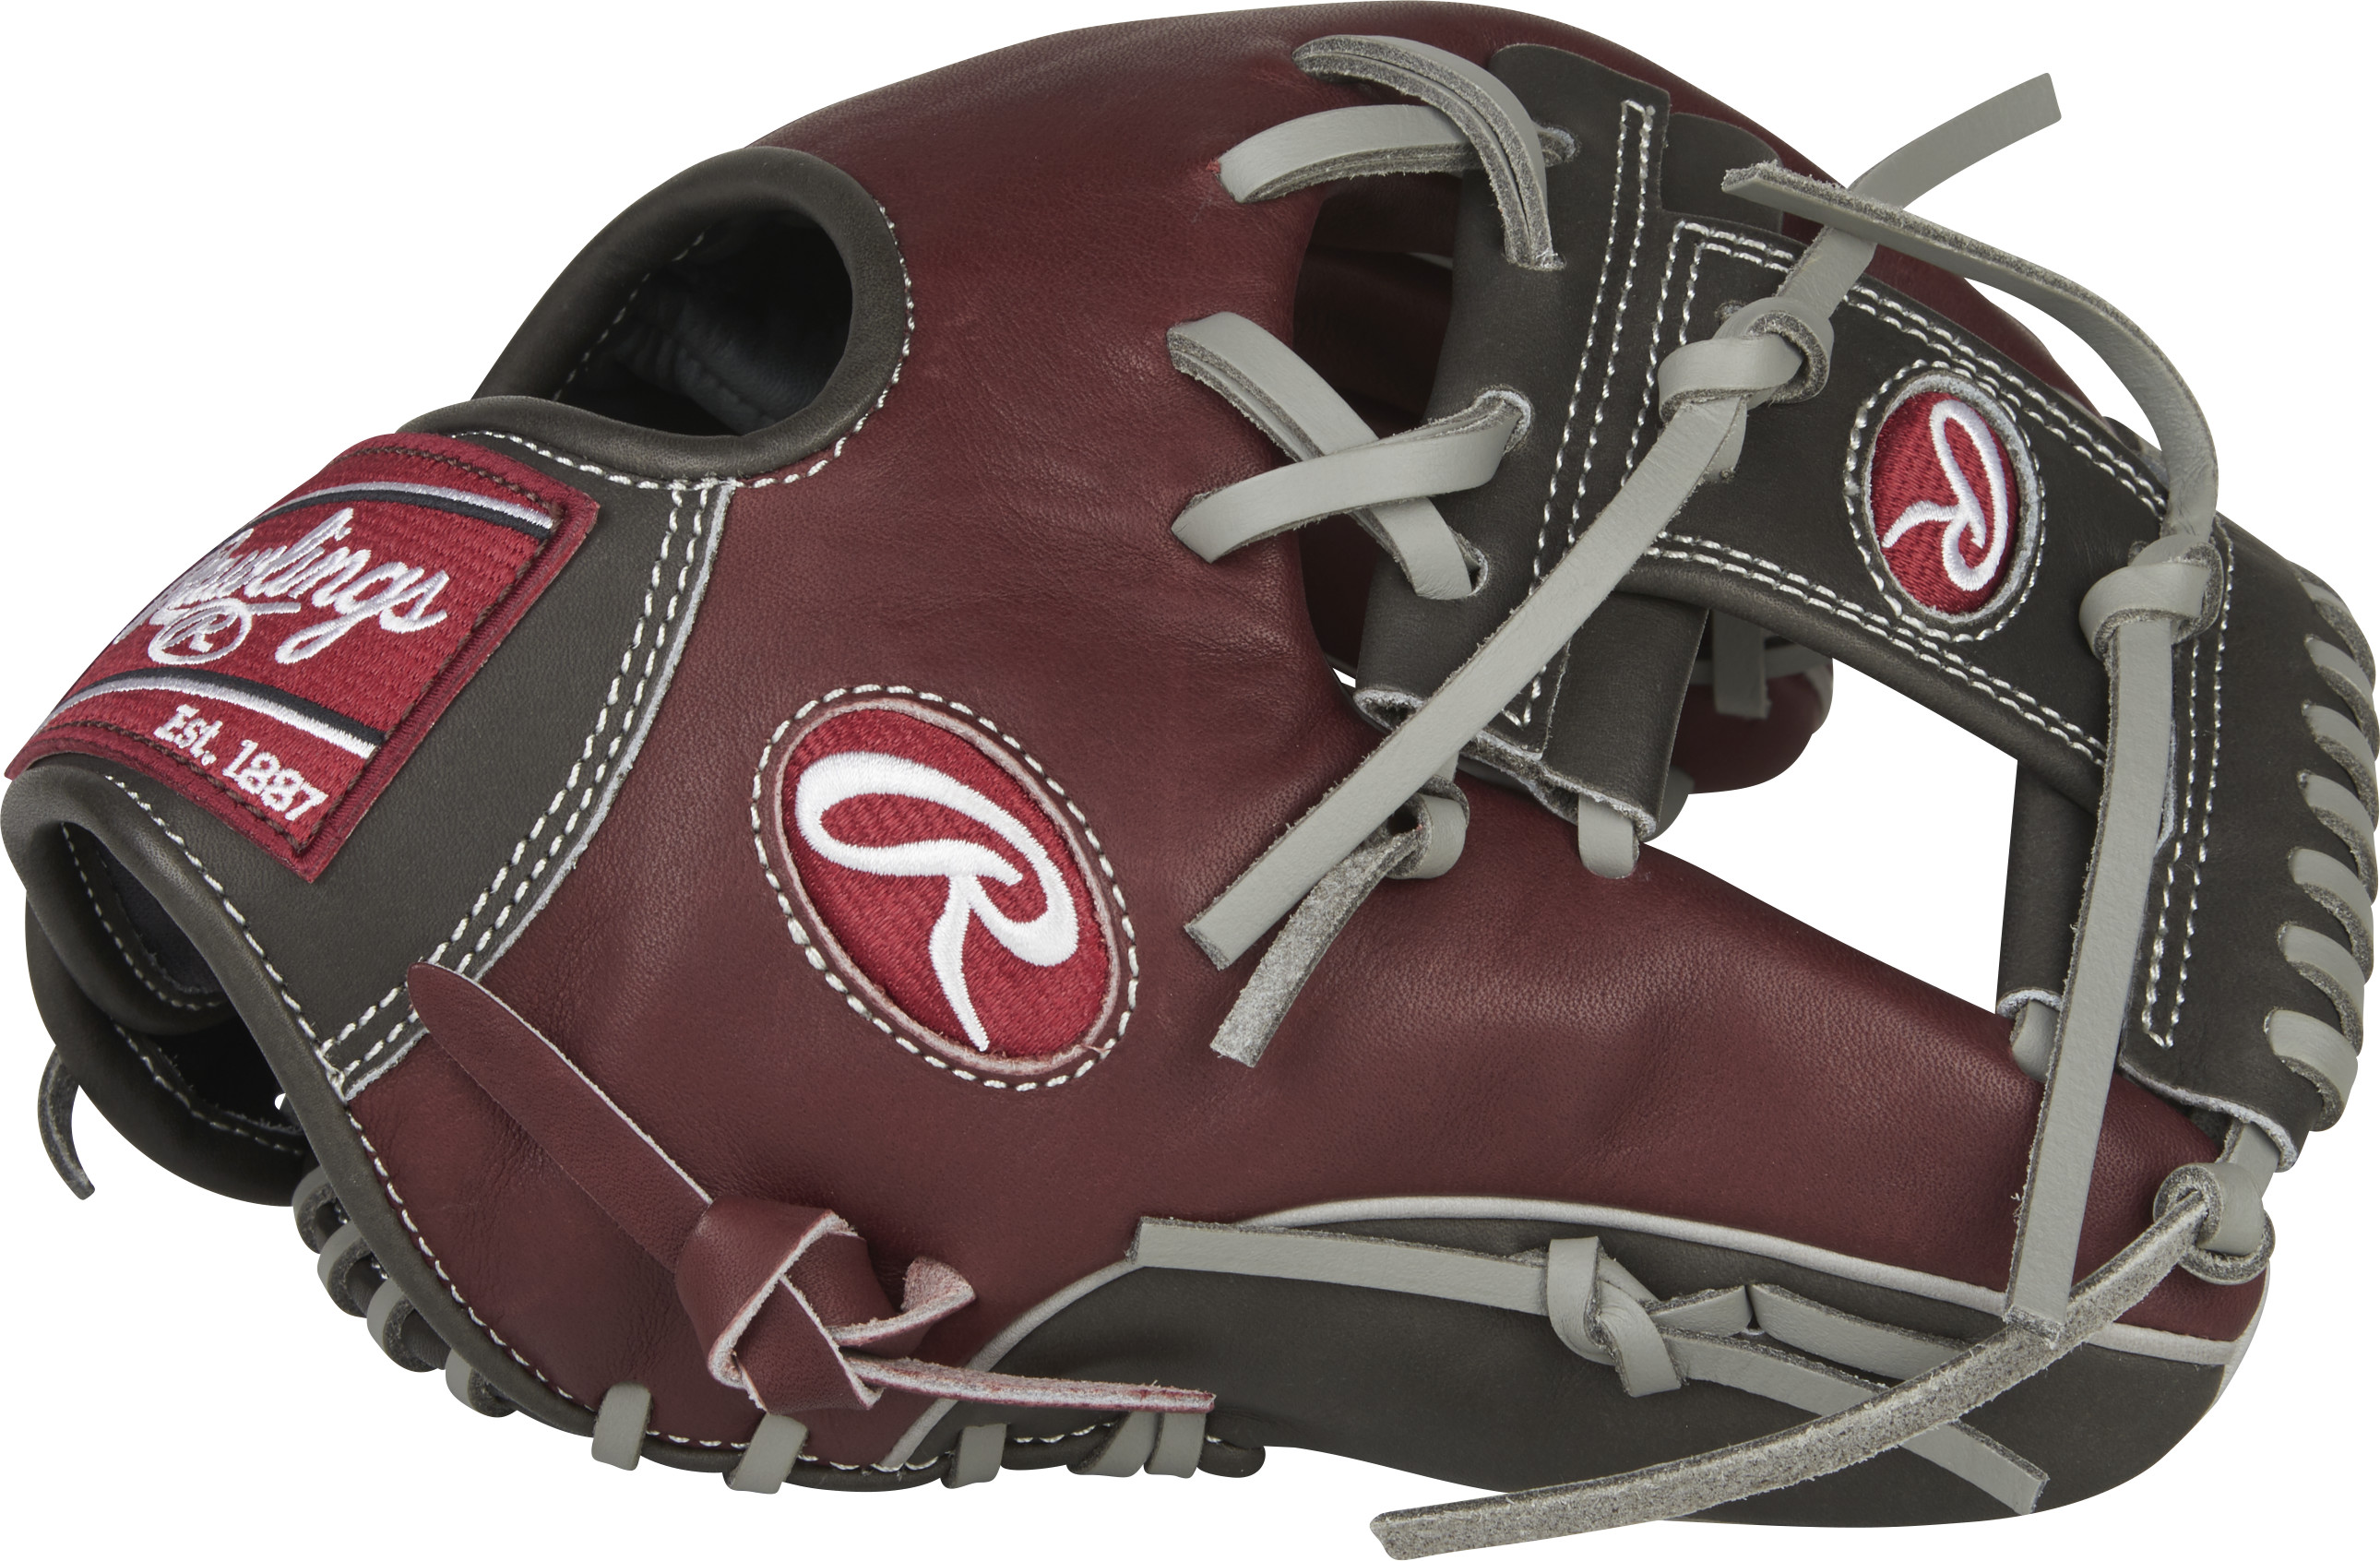 http://www.bestbatdeals.com/images/gloves/rawlings/PRO204-2SHDS-3.jpg